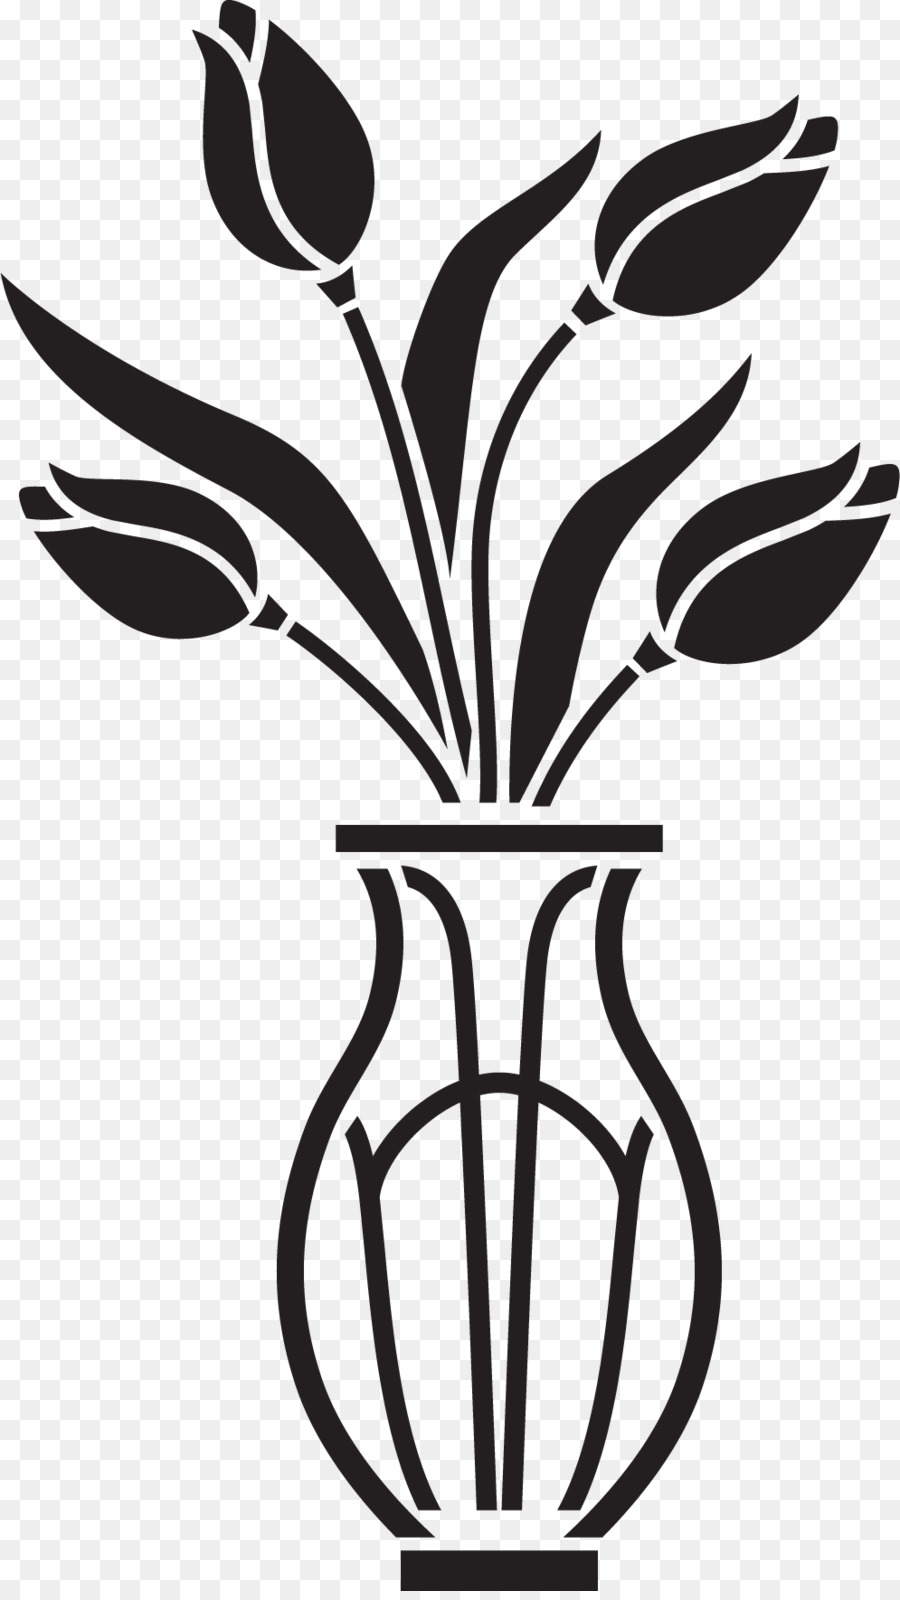 Black And White Flower Png Download 995 1759 Free Transparent Flowerpot Png Download Cleanpng Kisspng